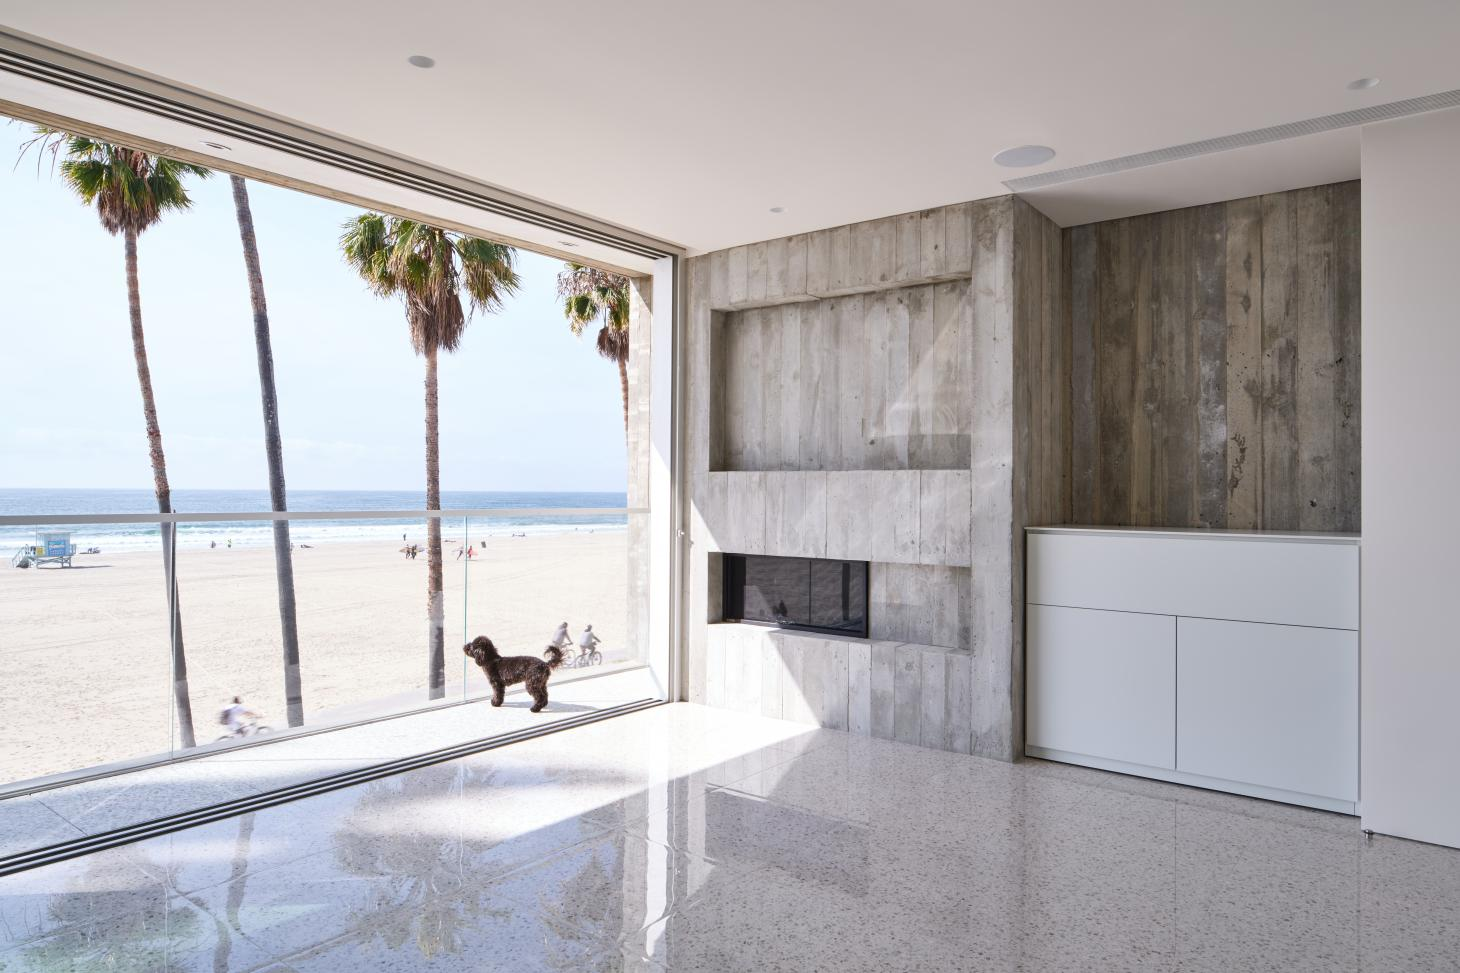 Venice Beach house by Dan Brunn, showing doggy looking out towards the sea